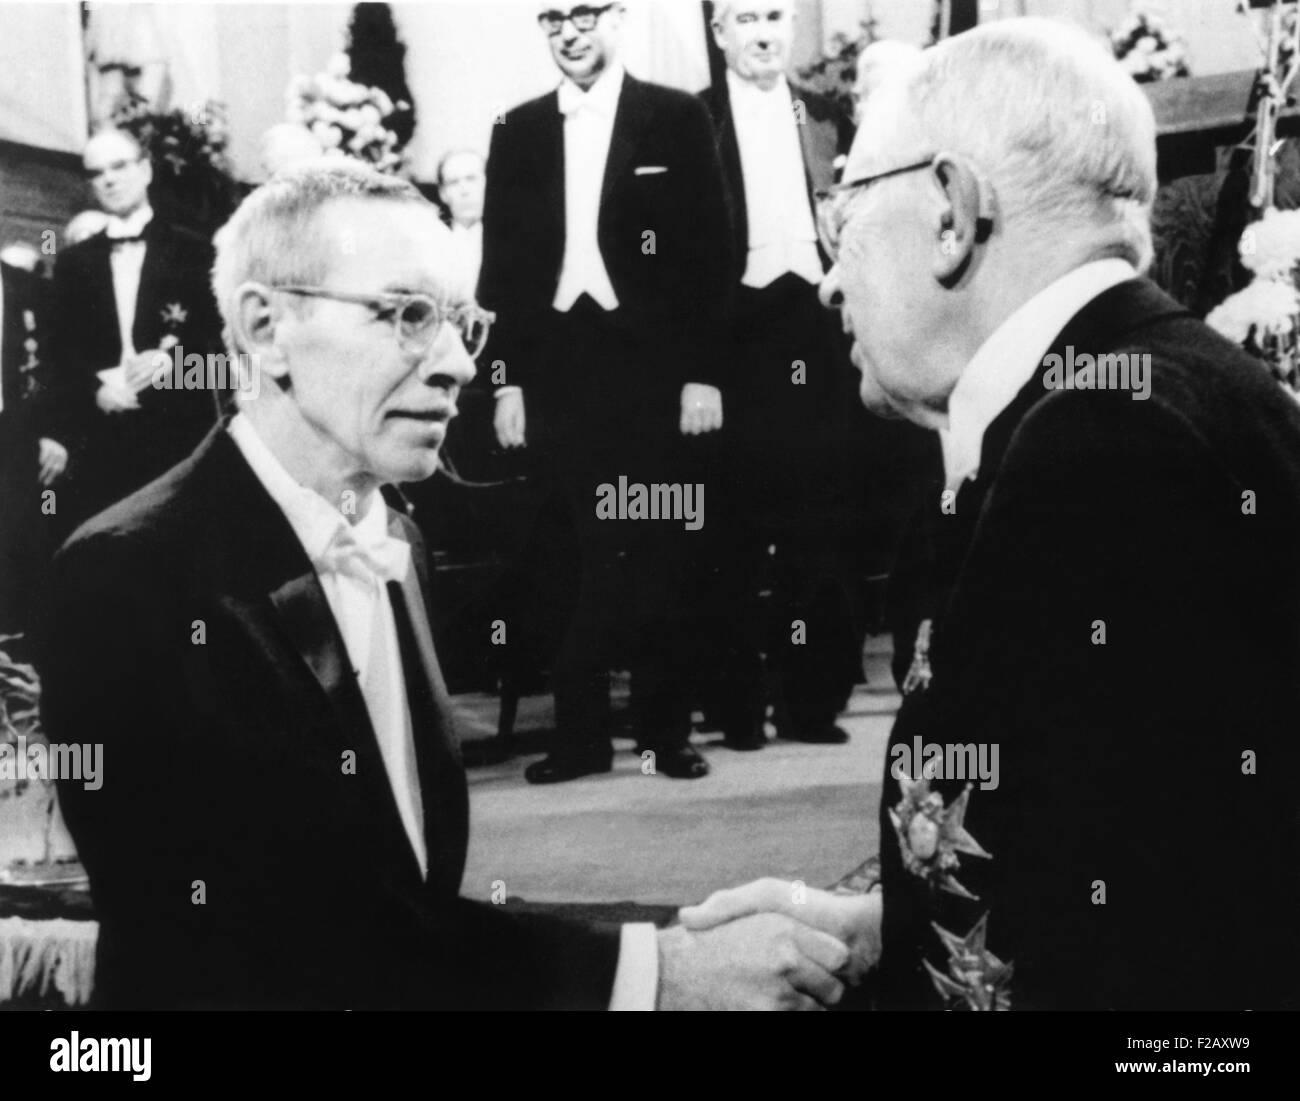 Dr. Alfred D. Hershey, 60, awarded 1969 Nobel Prize for Medicine. He shared the prize with Dr. Salvador Luria and - Stock Image